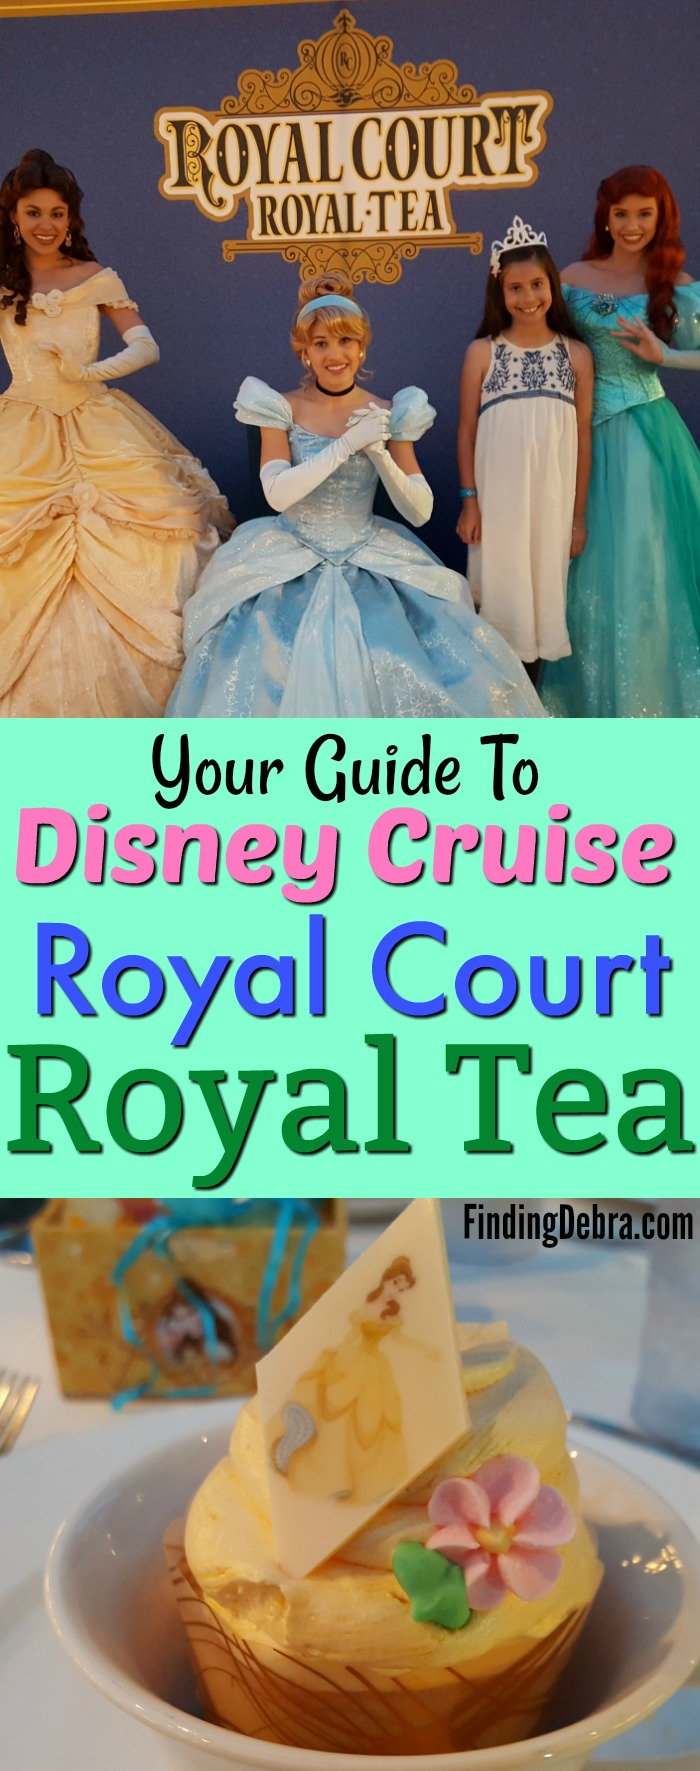 Disney Cruise Royal Court Royal Tea - Your Guide To